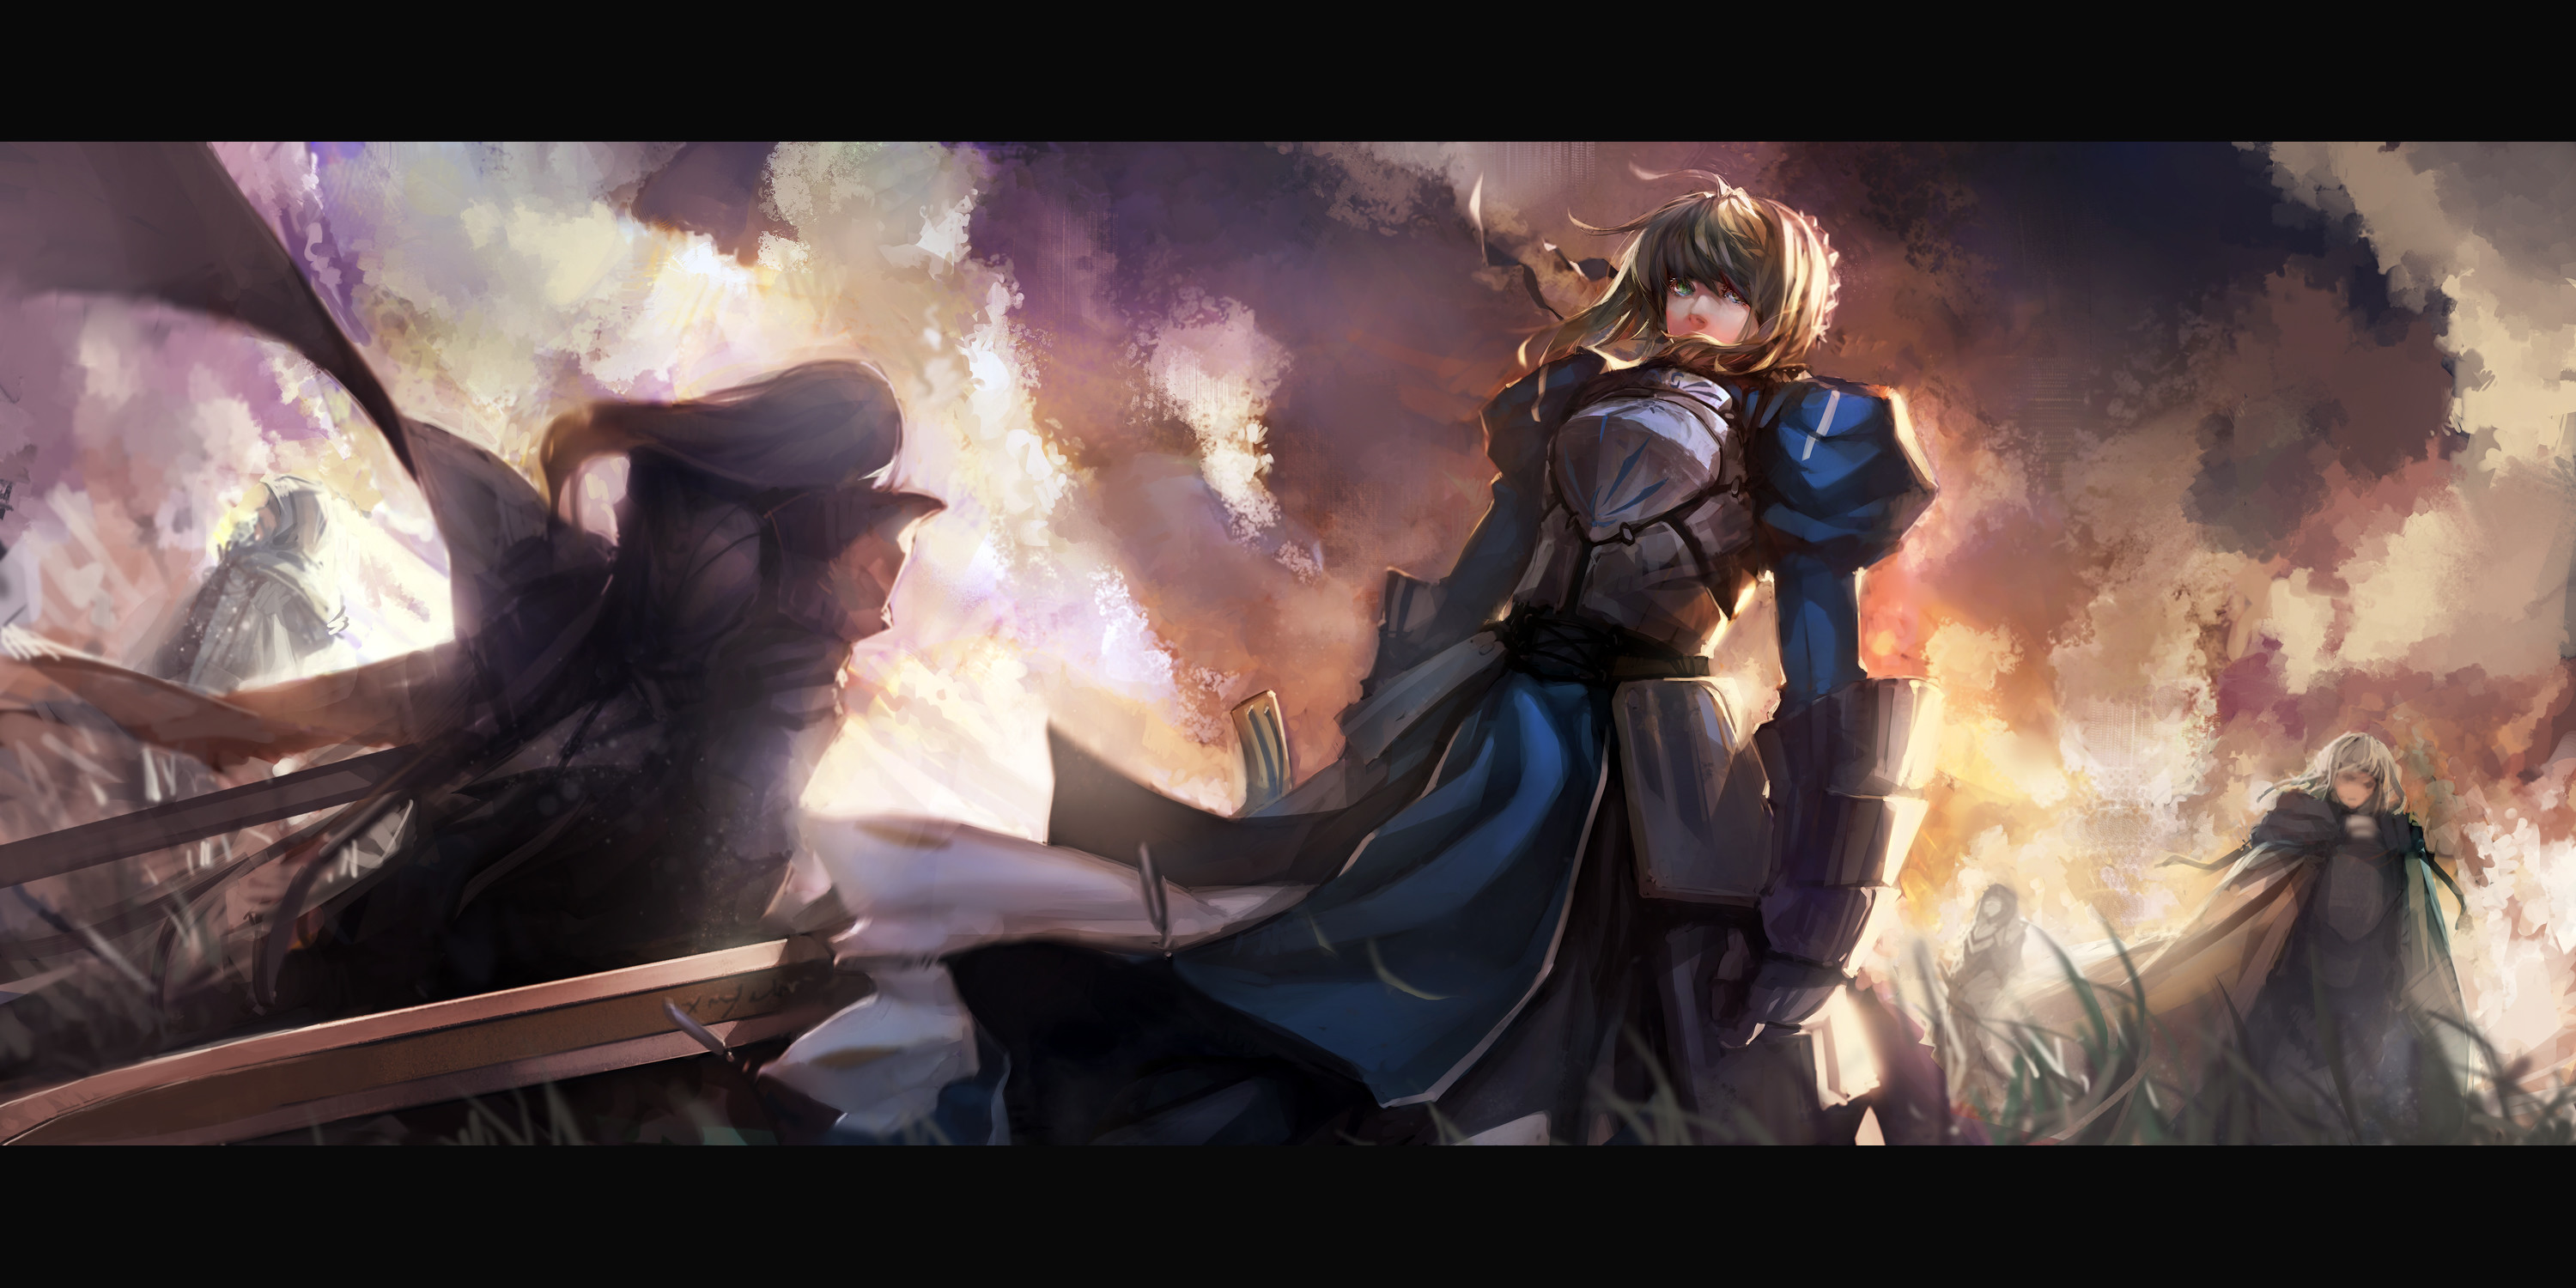 Fate/stay night · download Fate/stay night image